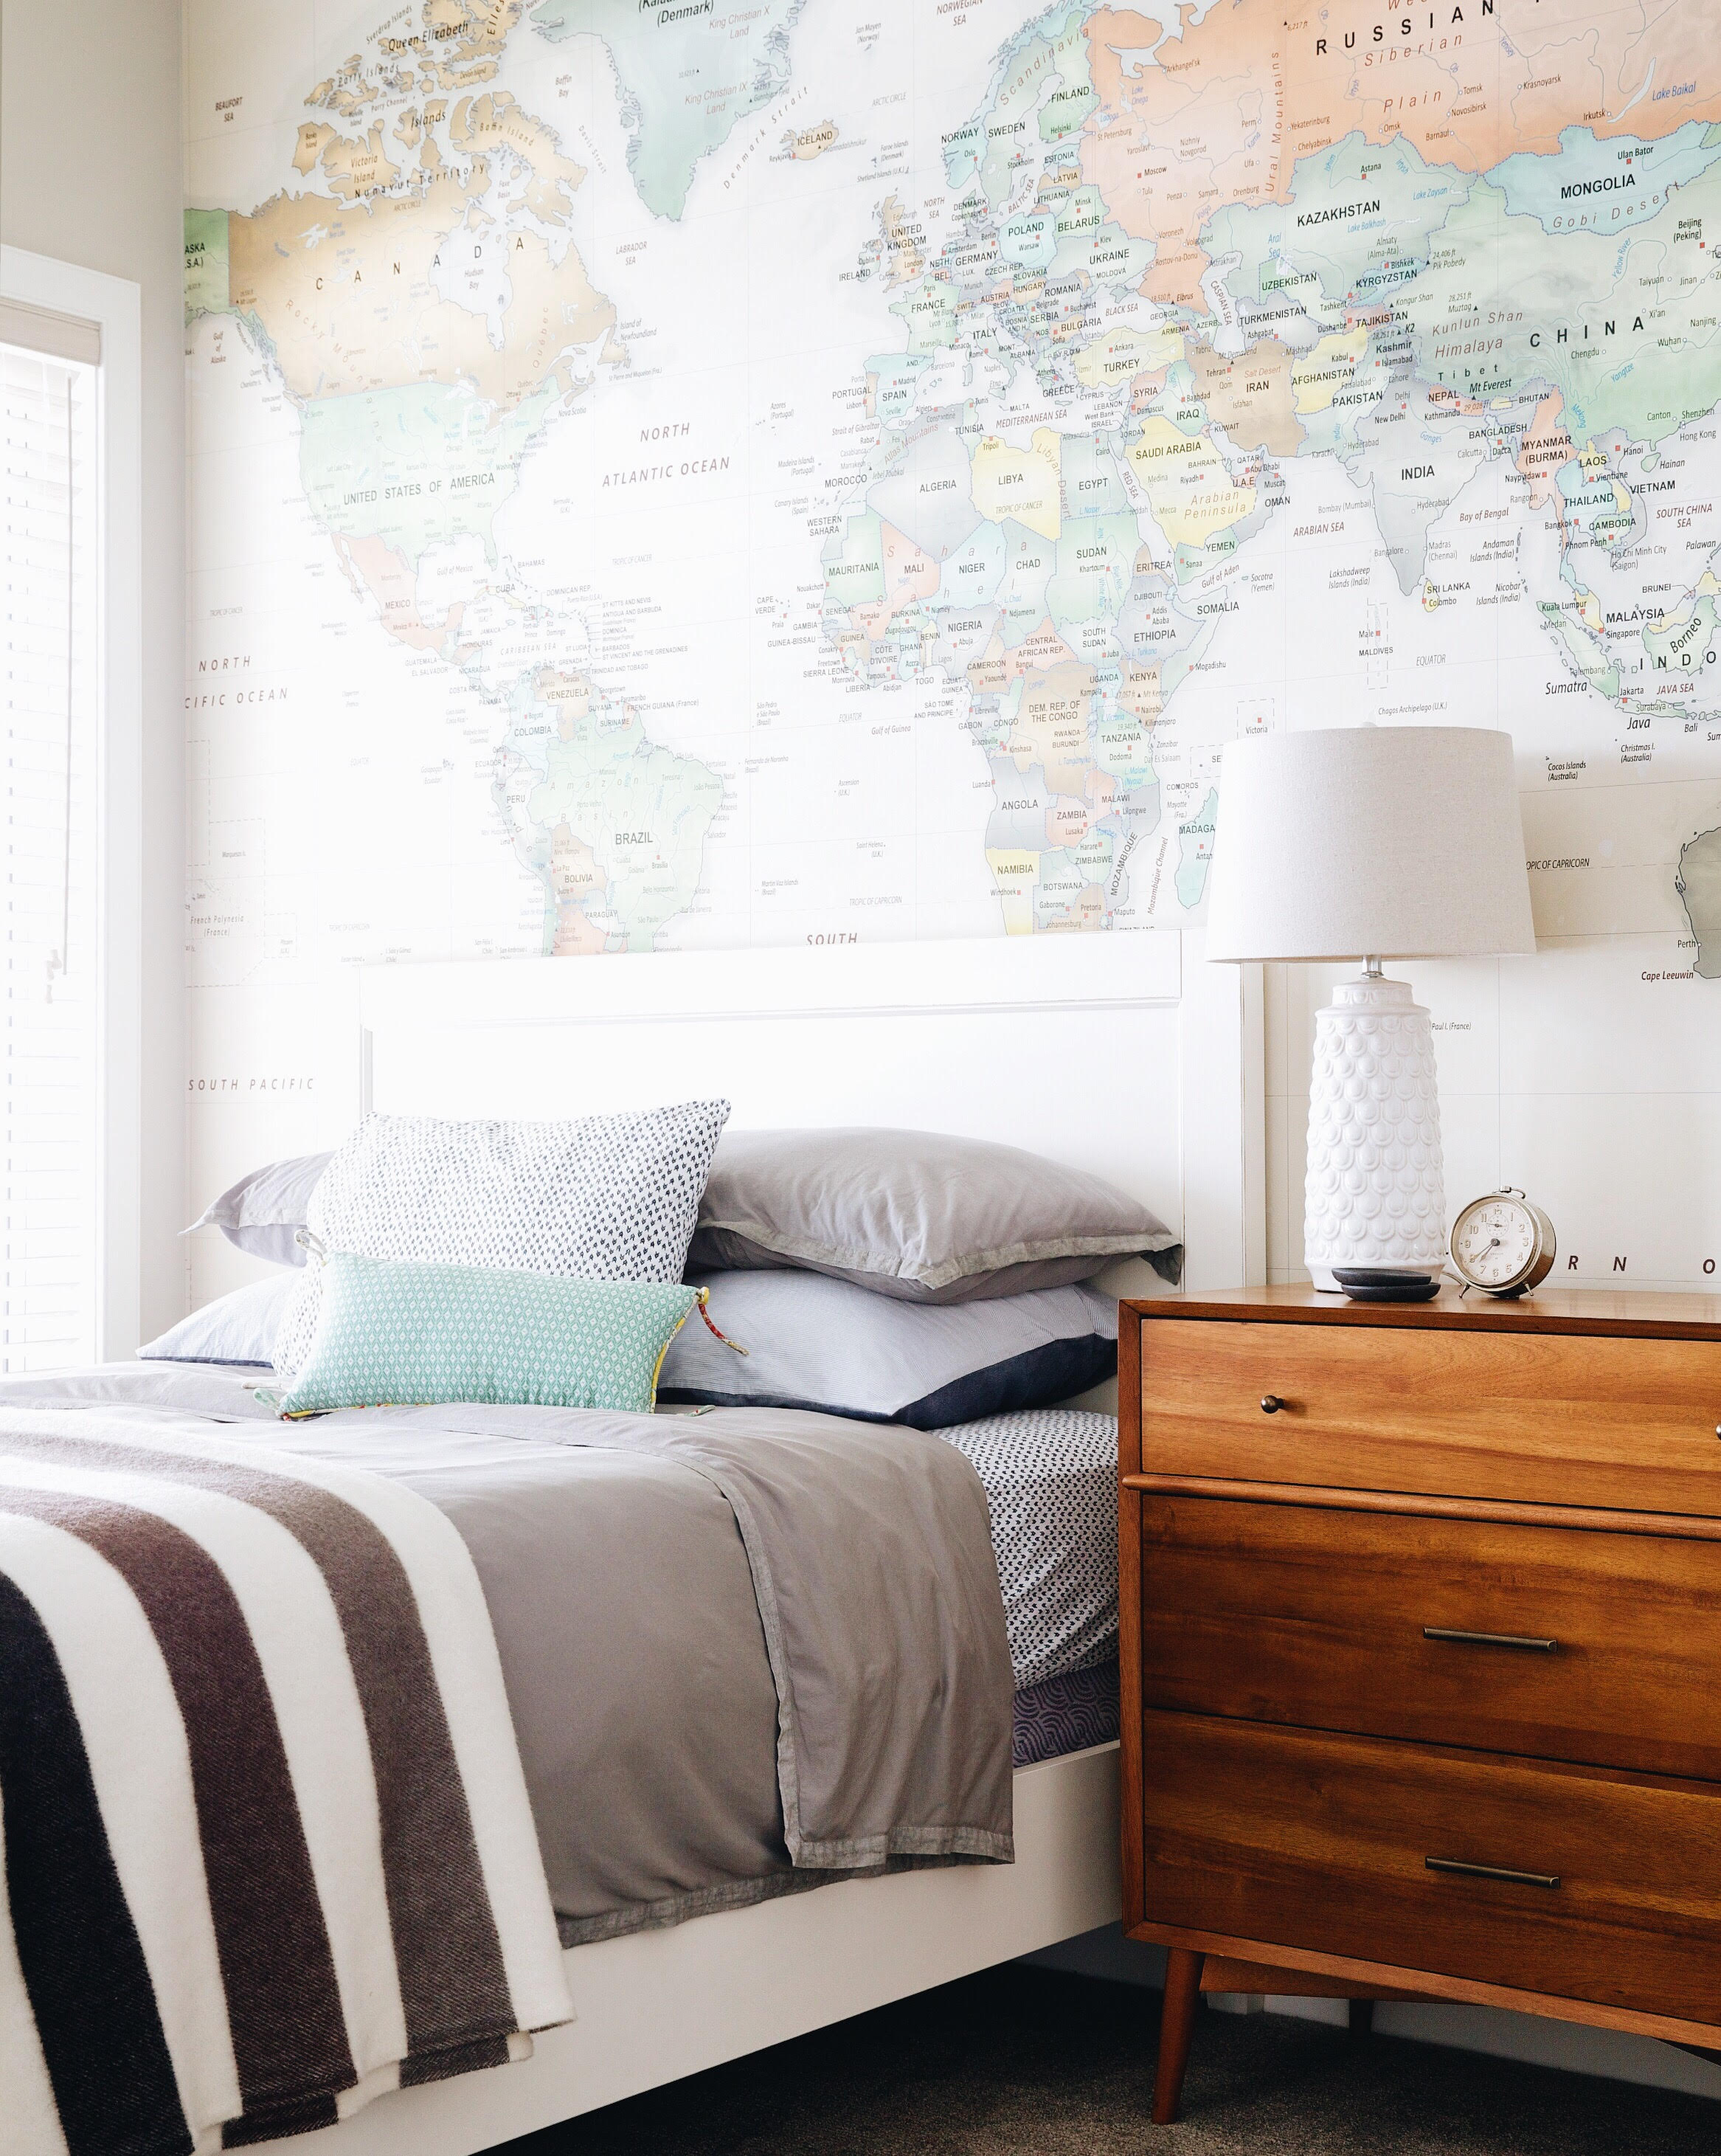 At our   Sylvan Lake project  we installed a wall to wall, floor to ceiling world map in the guest room